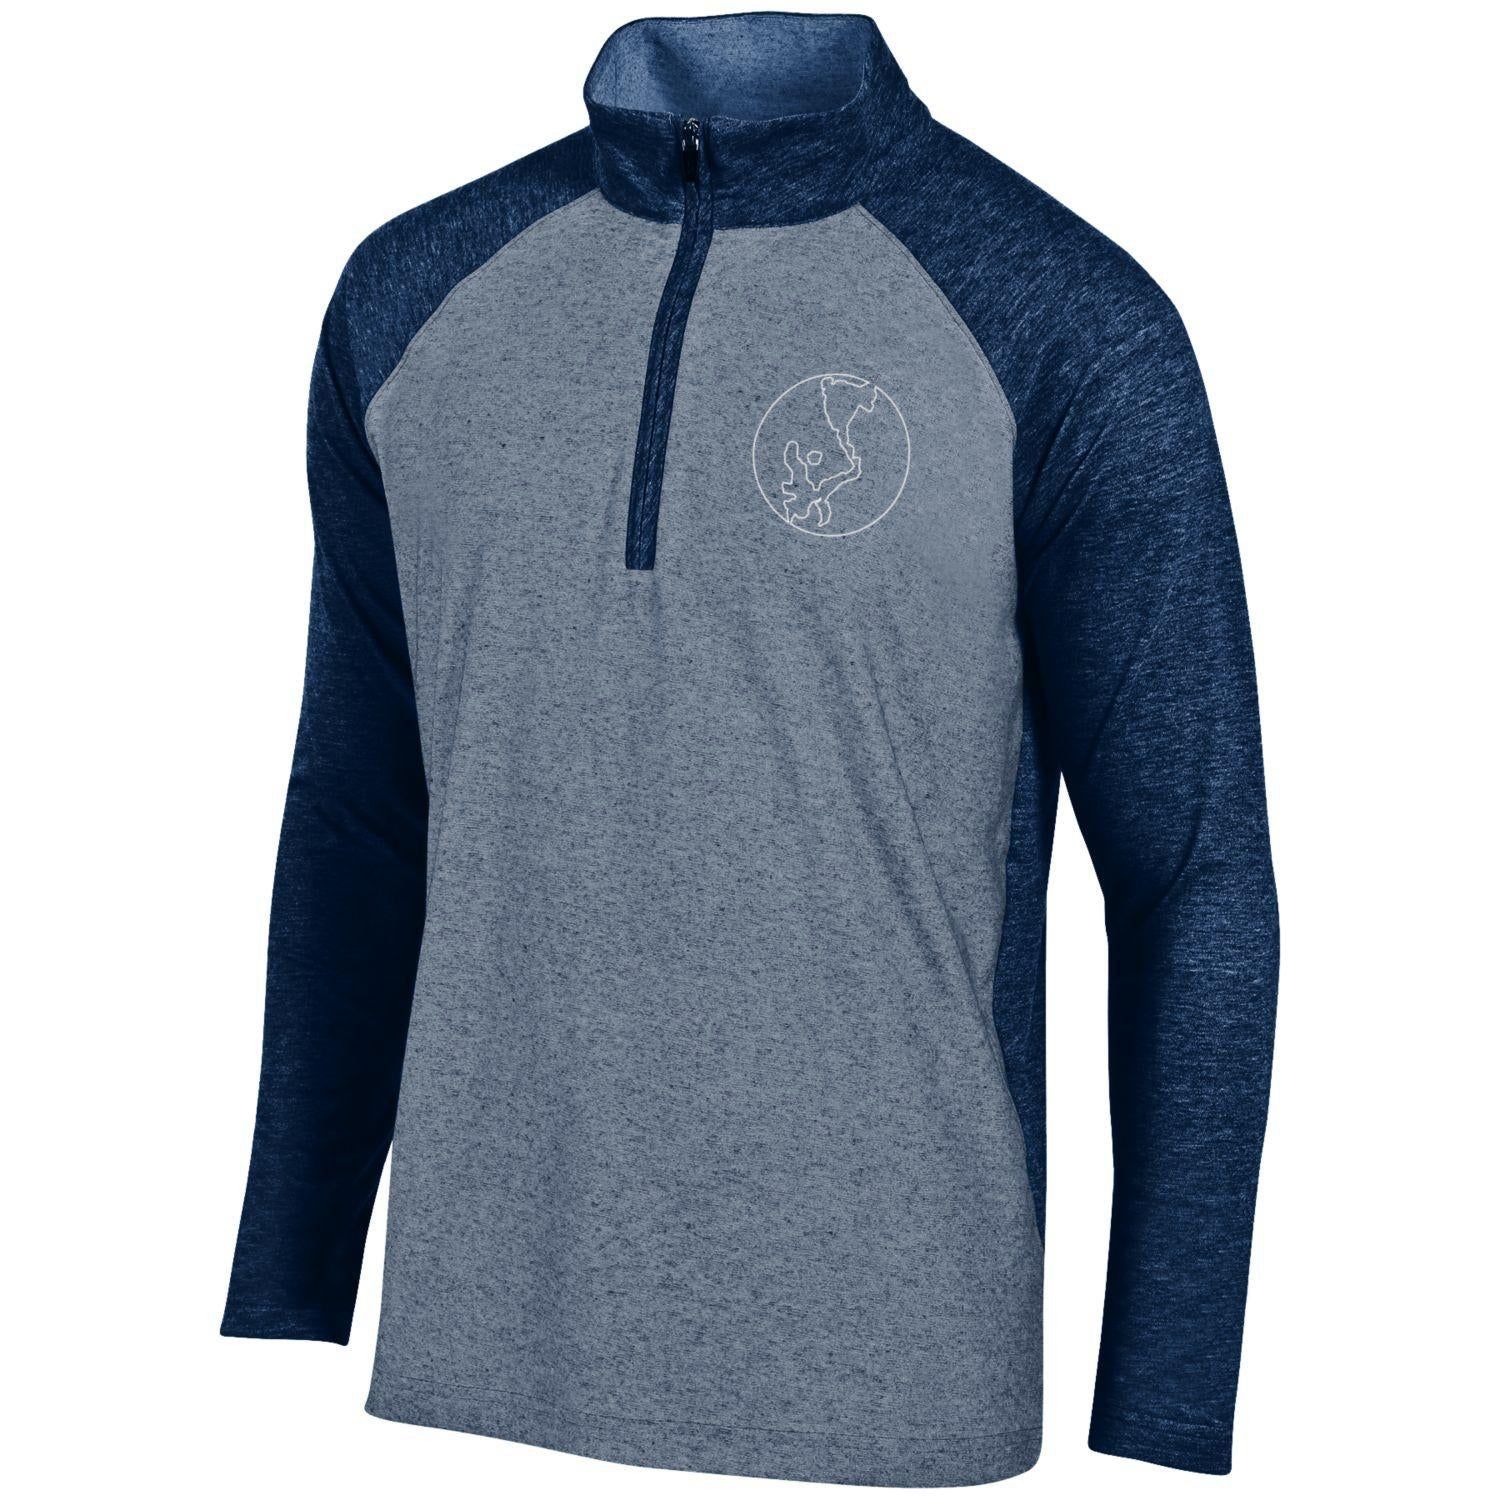 Gear Two-Tone Heathered Navy and Gray 1/4 Zip